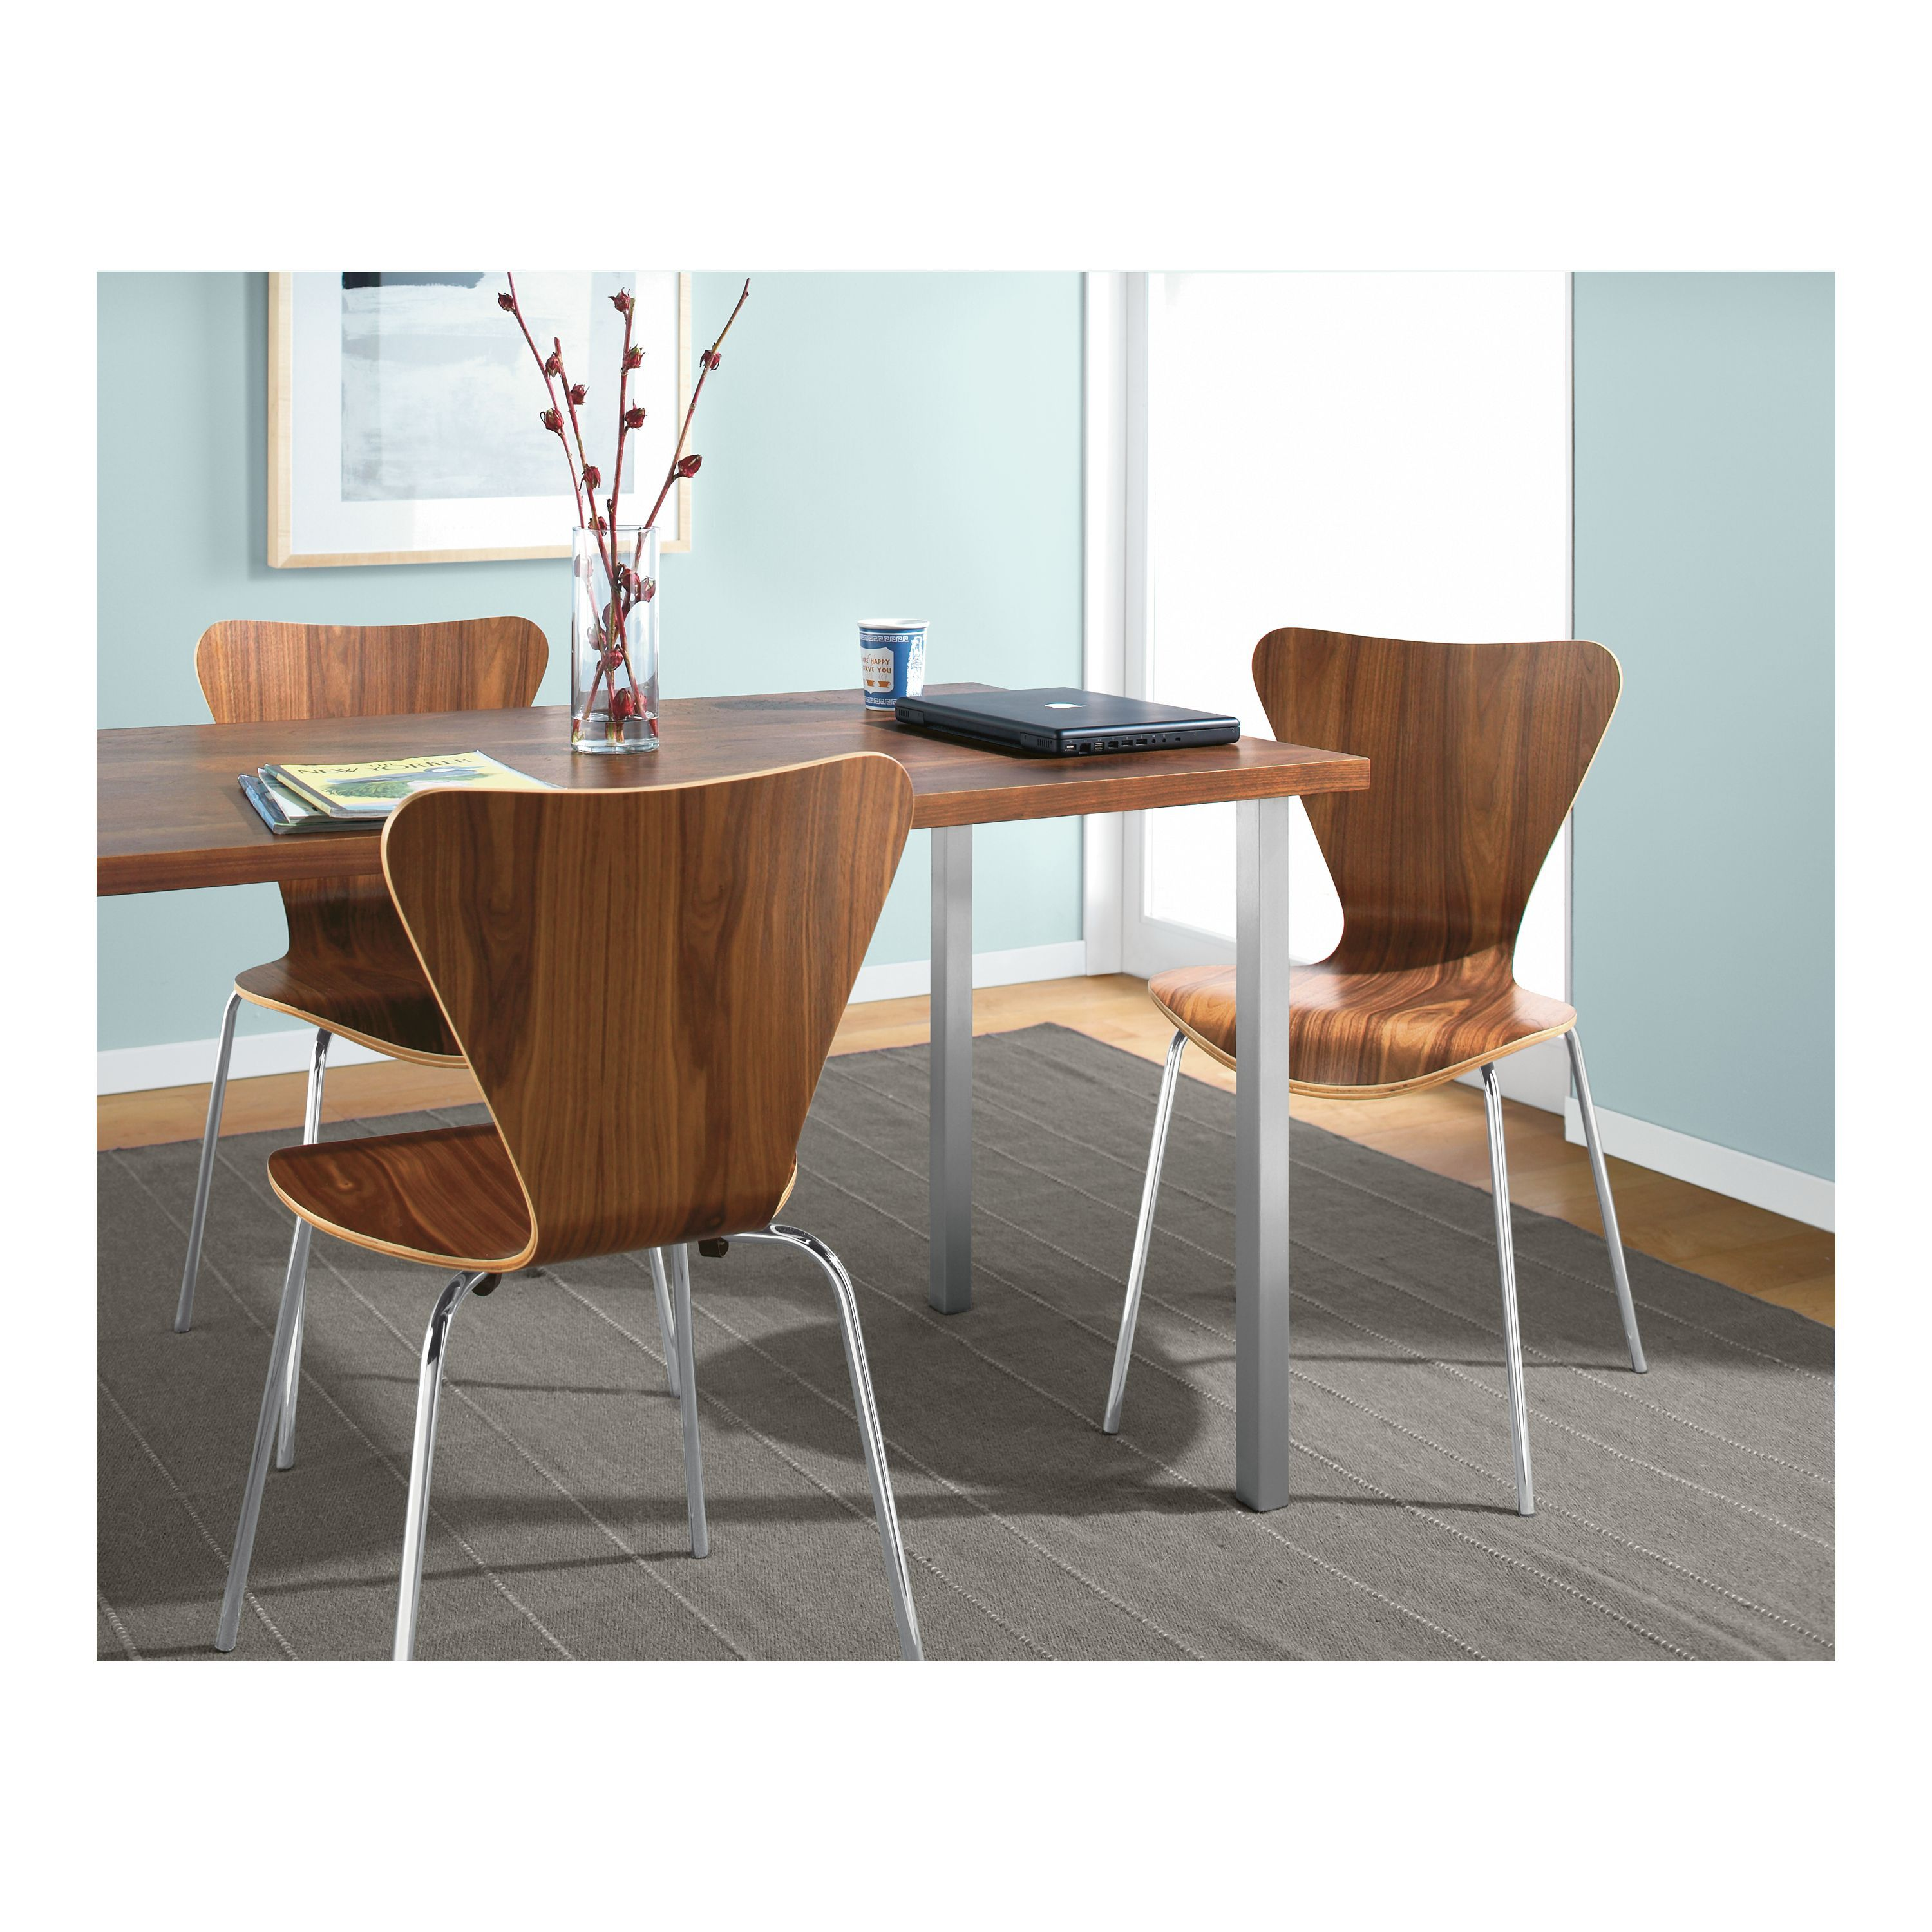 portica leg tables products table legs table furniture table rh pinterest com